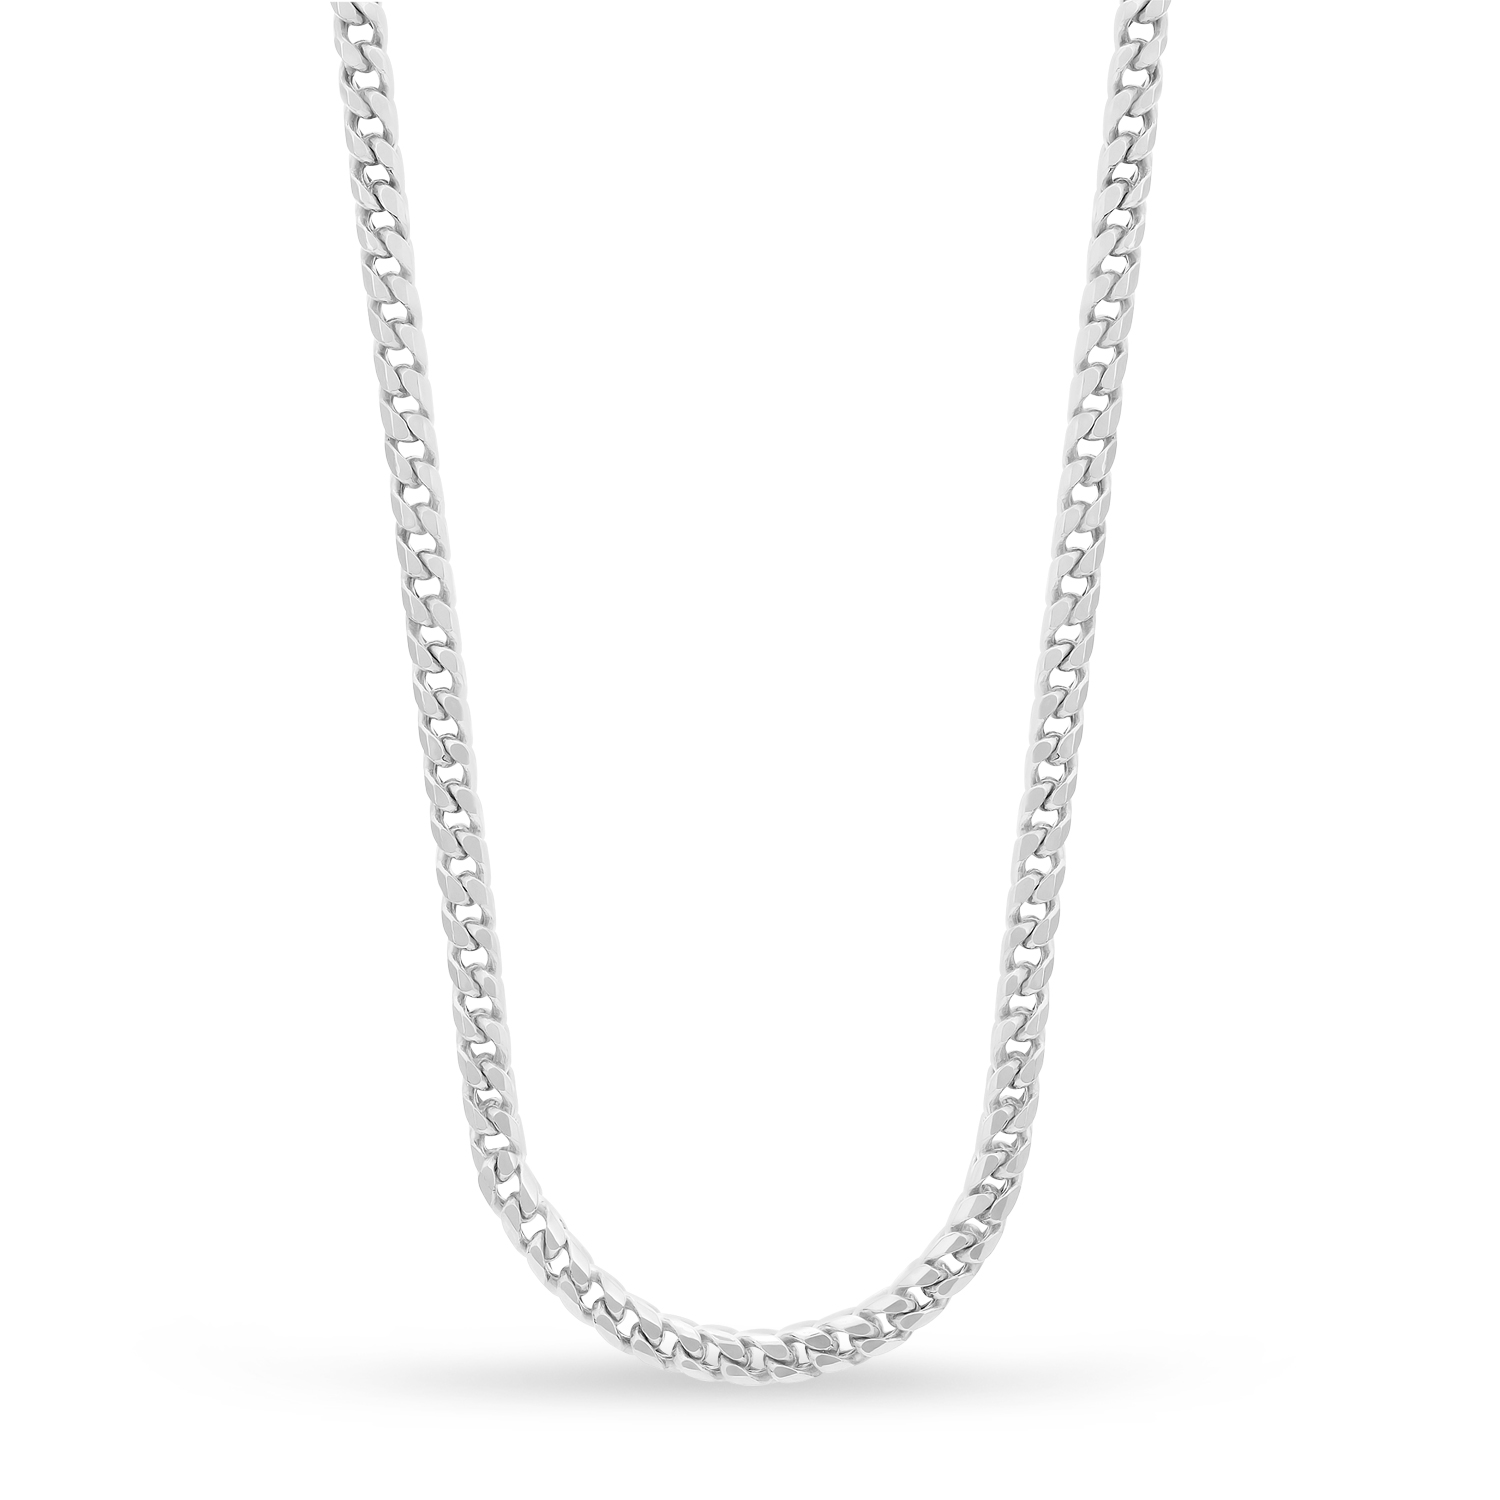 Franco Chain Necklace 14k White Gold